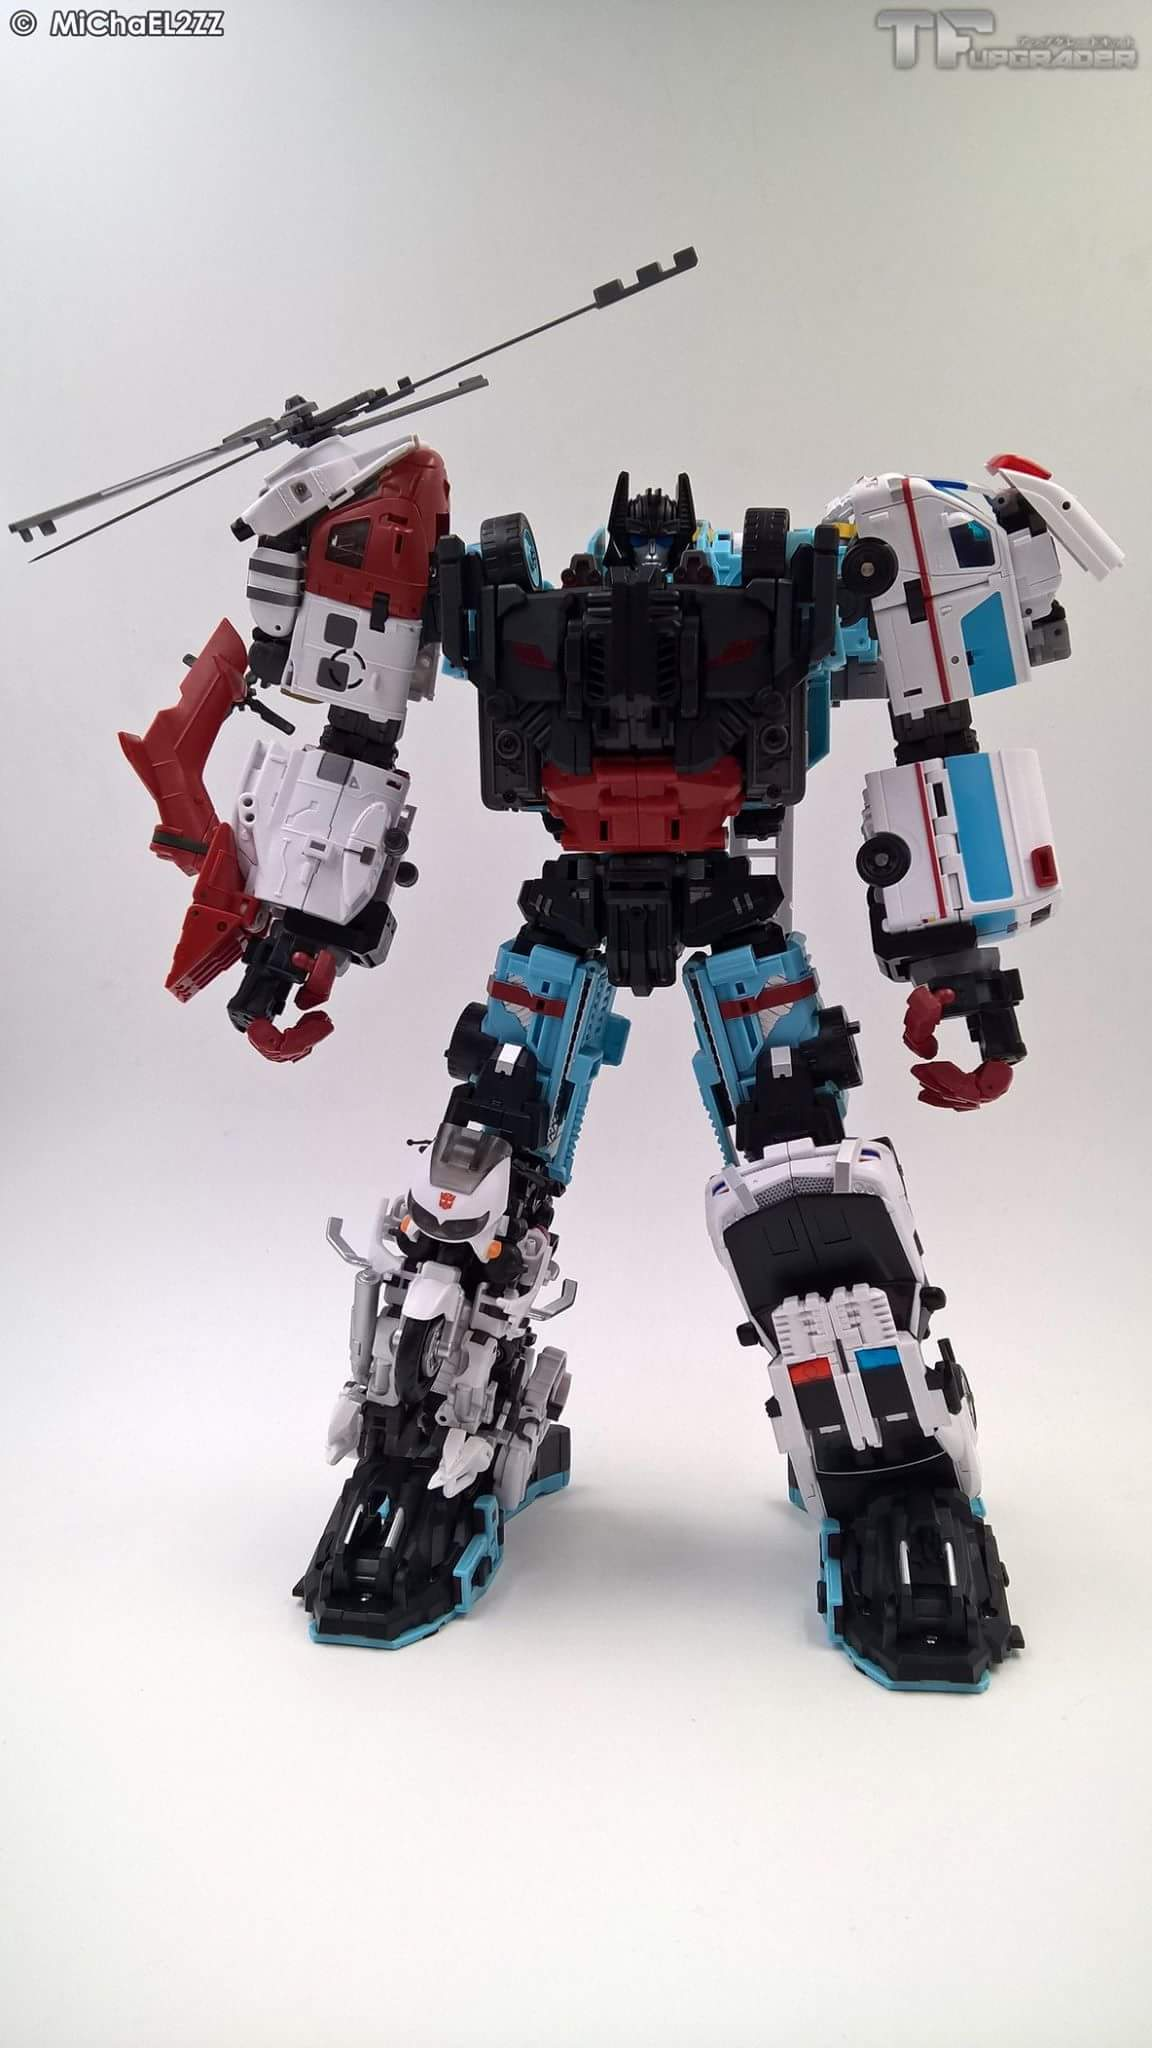 [MakeToys] Produit Tiers - Jouet MTCM-04 Guardia (aka Protectobots - Defensor/Defenso) - Page 4 OSQRg0Ds